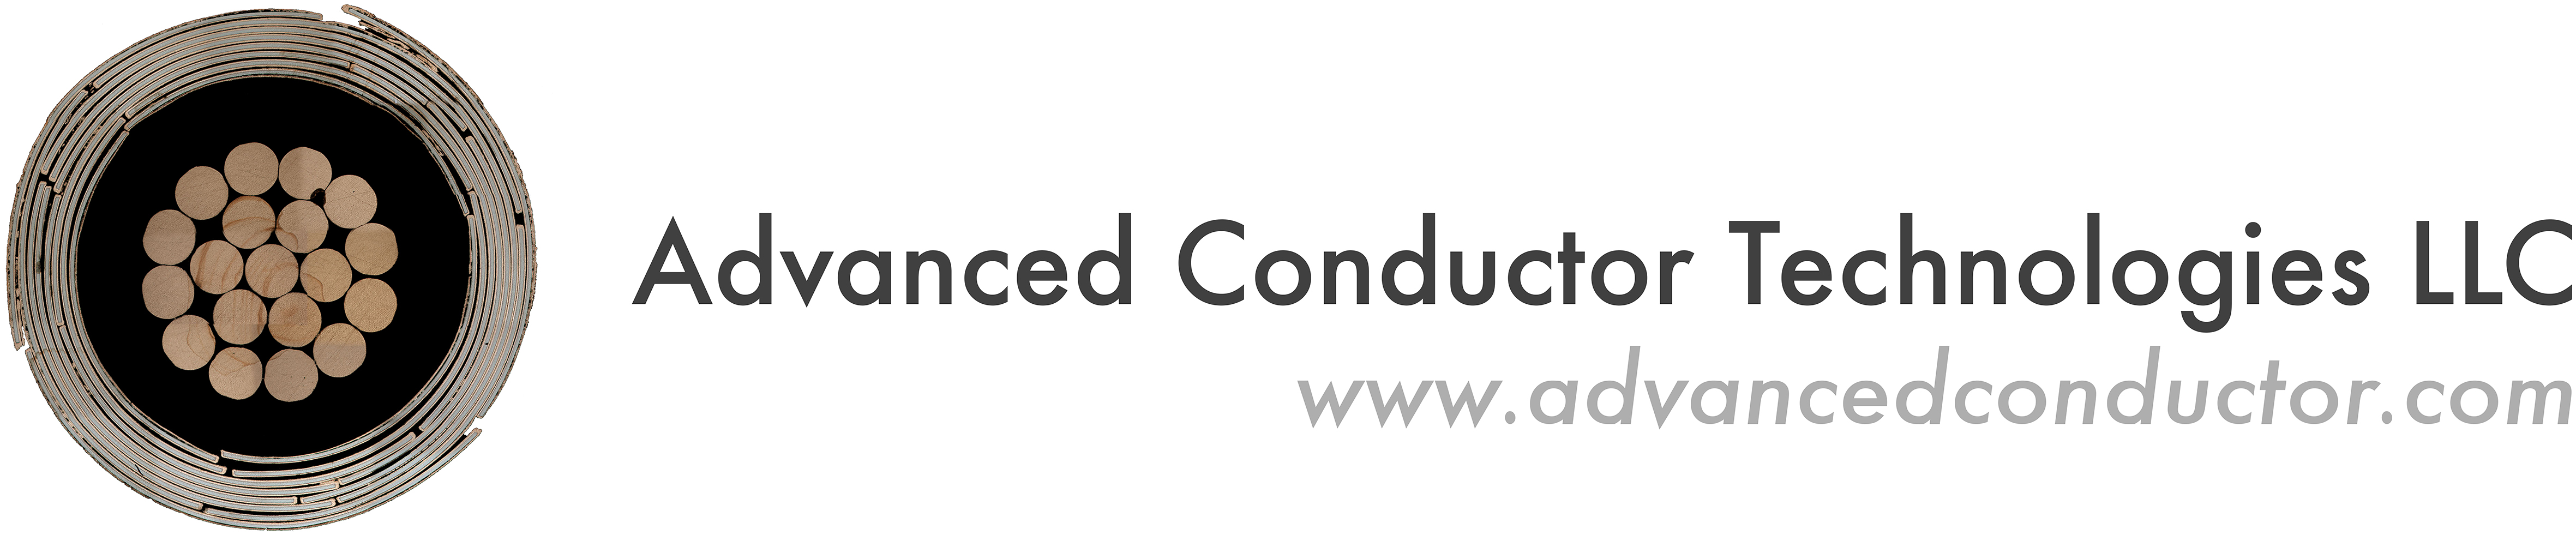 Advanced Conductor Technologies LLC